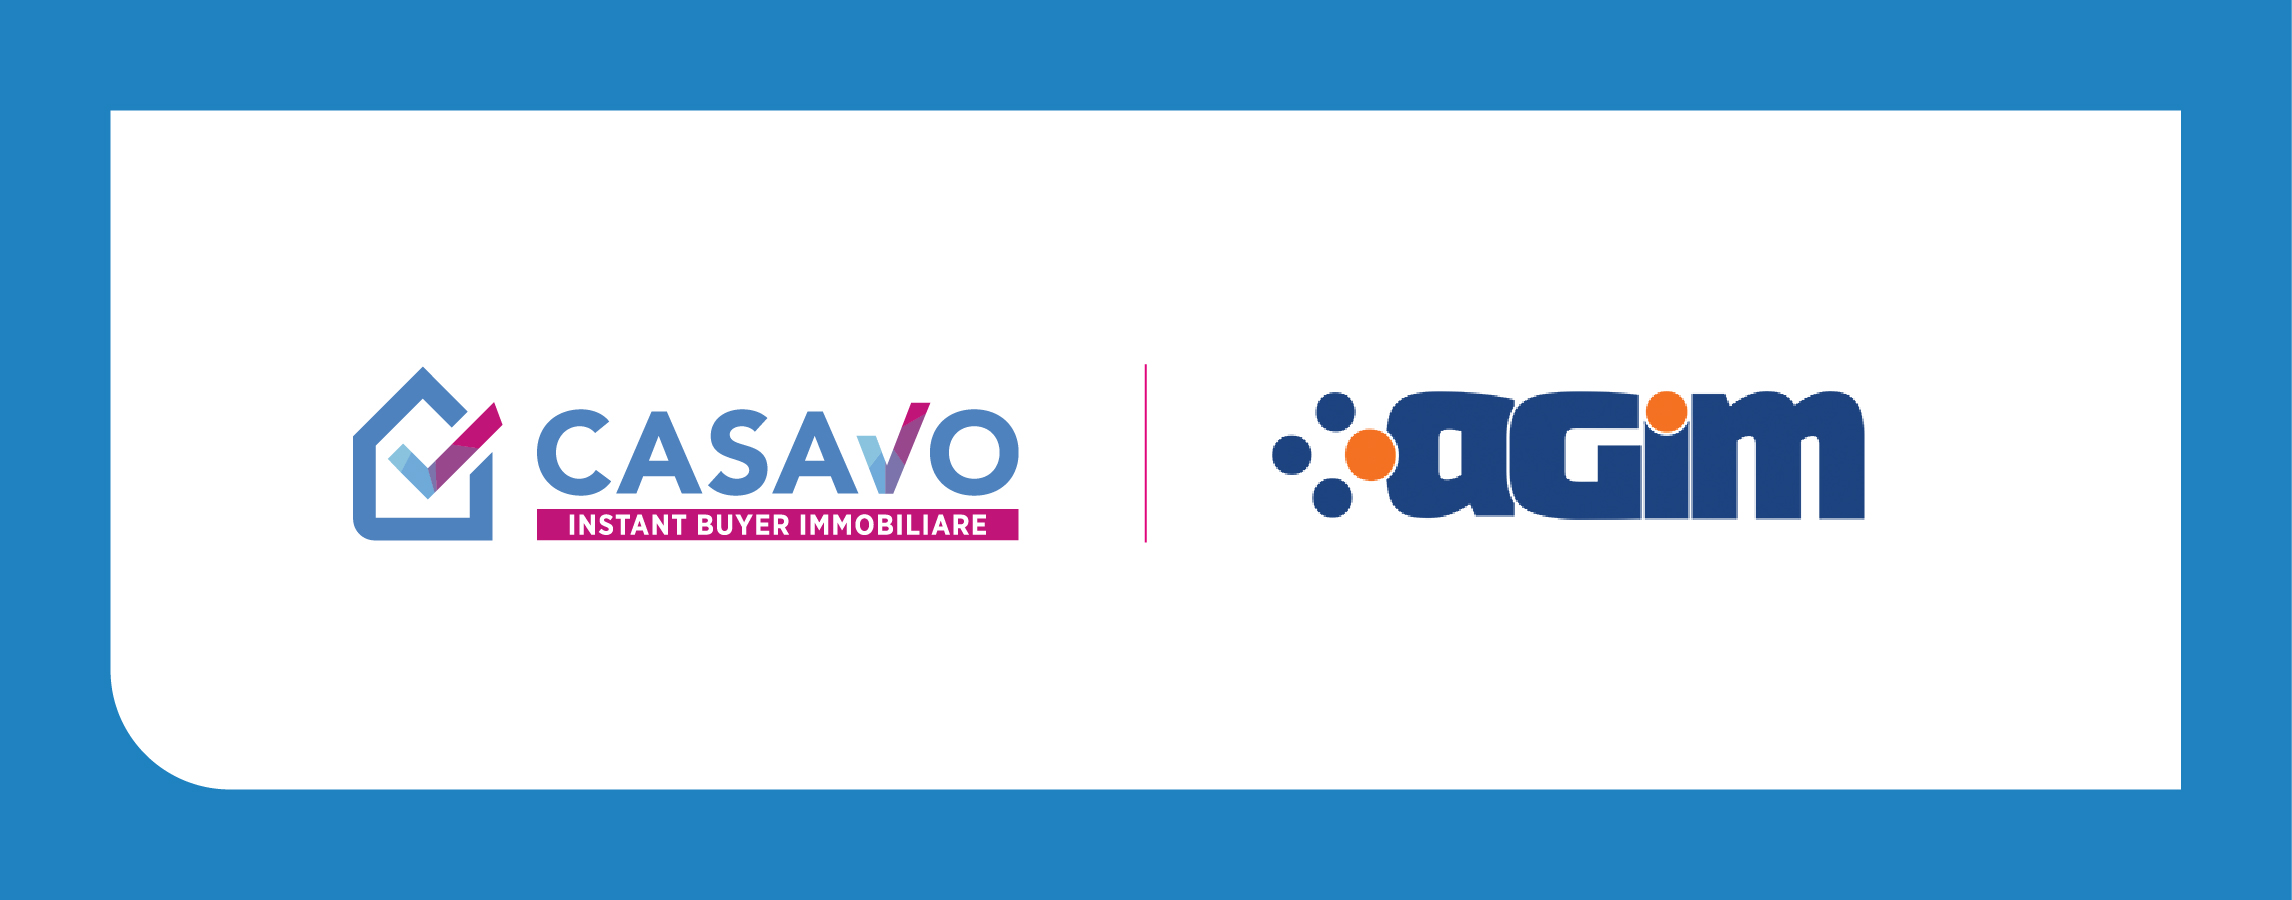 Casavo and Agim: a new alliance to offer you more opportunities